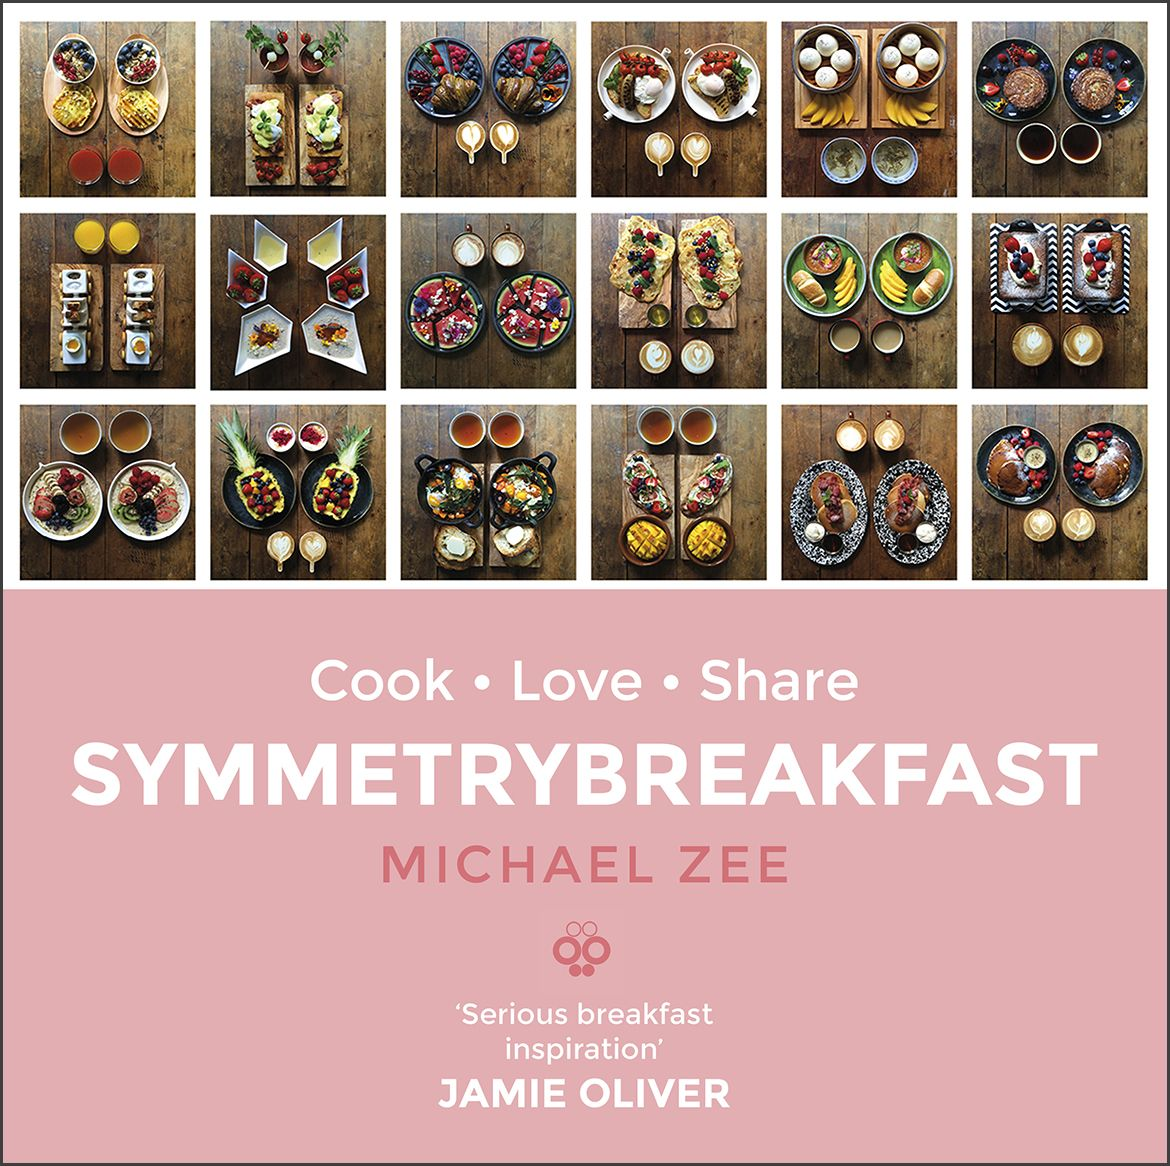 SymmetryBreakfast became a cooking book published worldwide in four languages